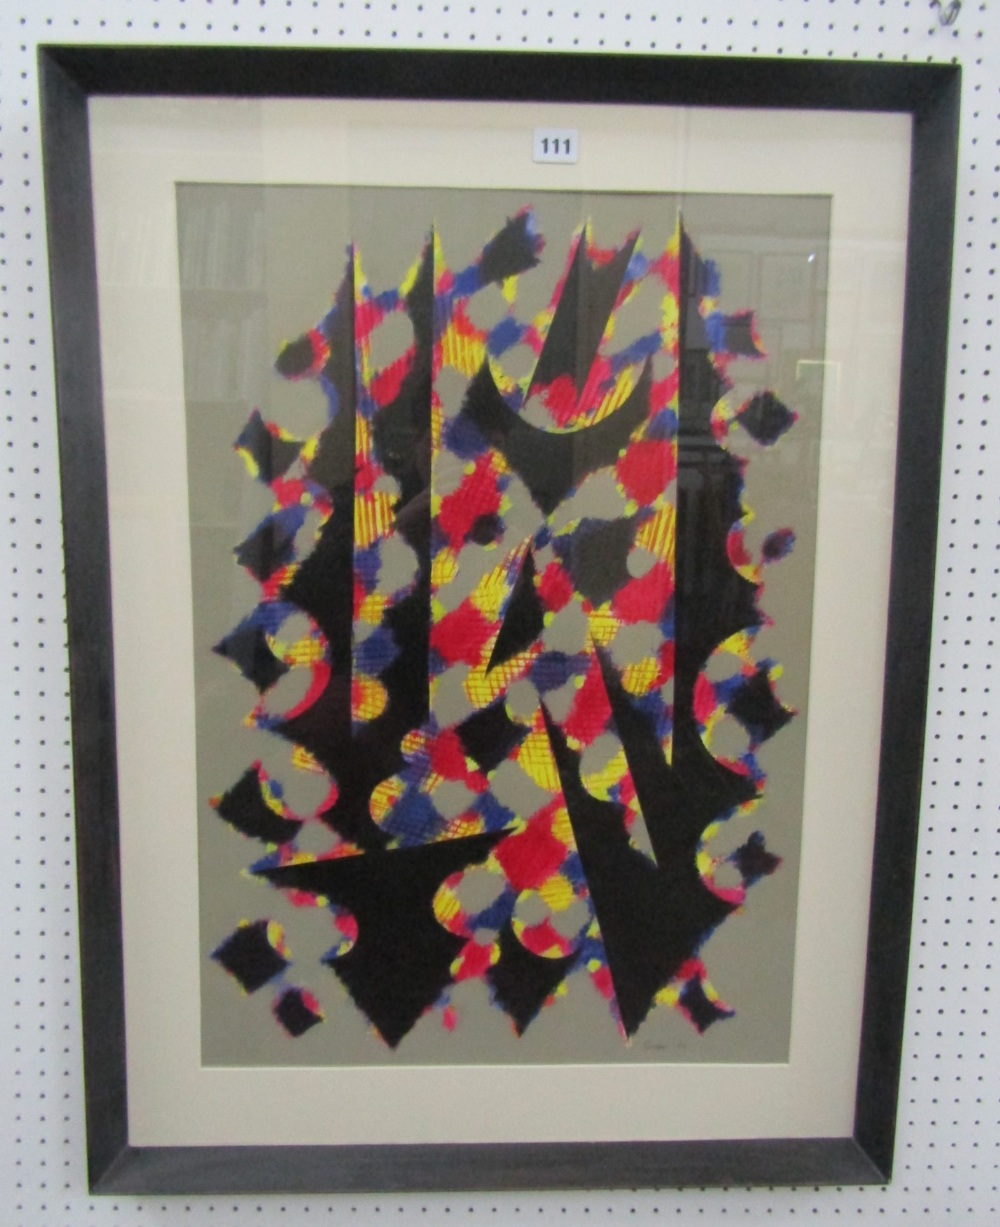 Lot 111 - William Gear (1915-1997) - Untitled (Black, Yellow, Red), signed and dated 1980, acrylic on paper,